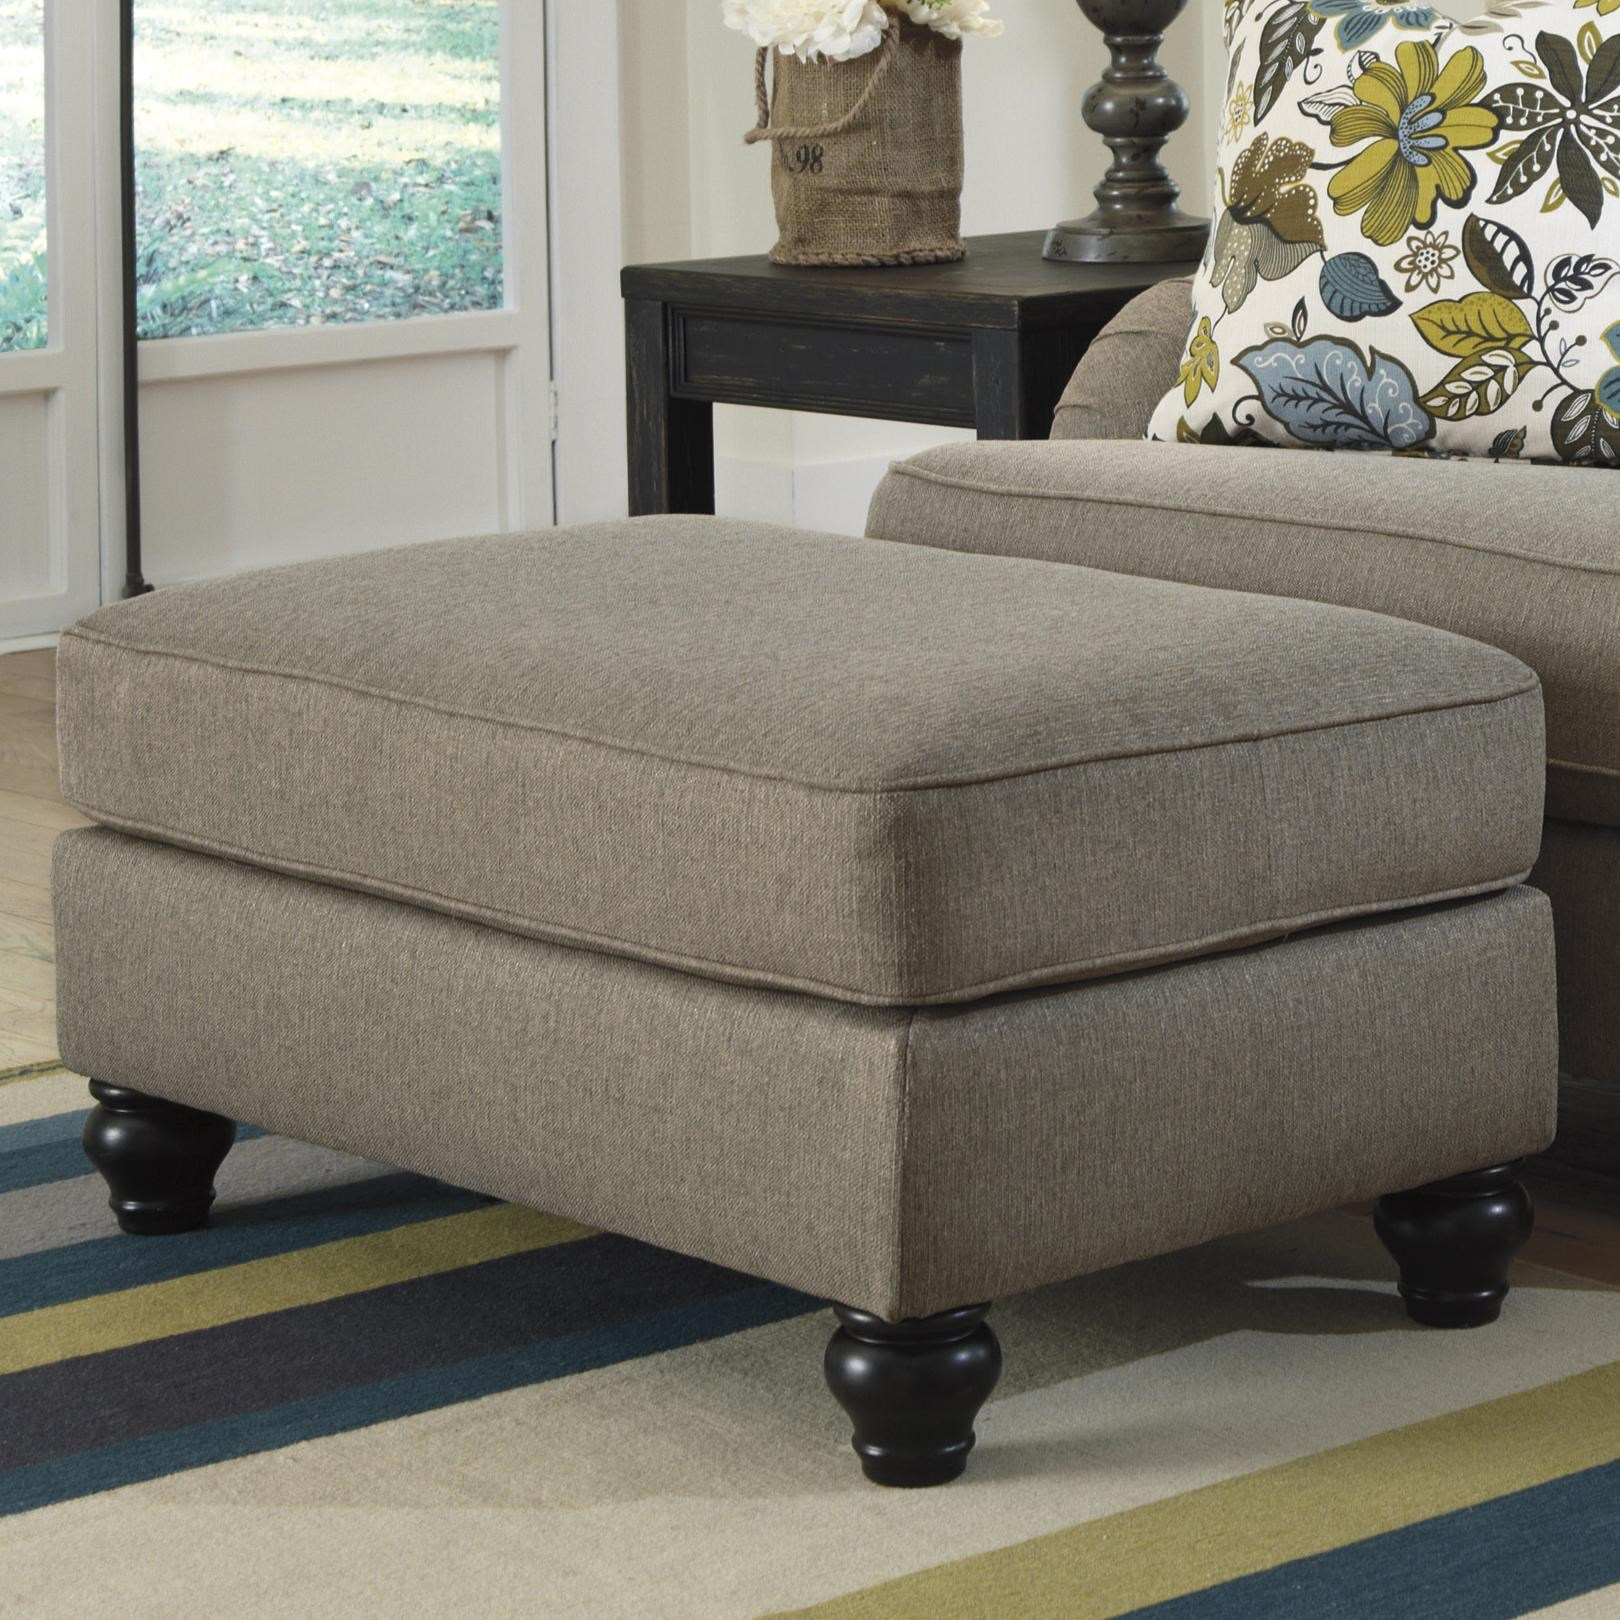 Ashley Furniture Hariston   Shitake Rectangular Ottoman